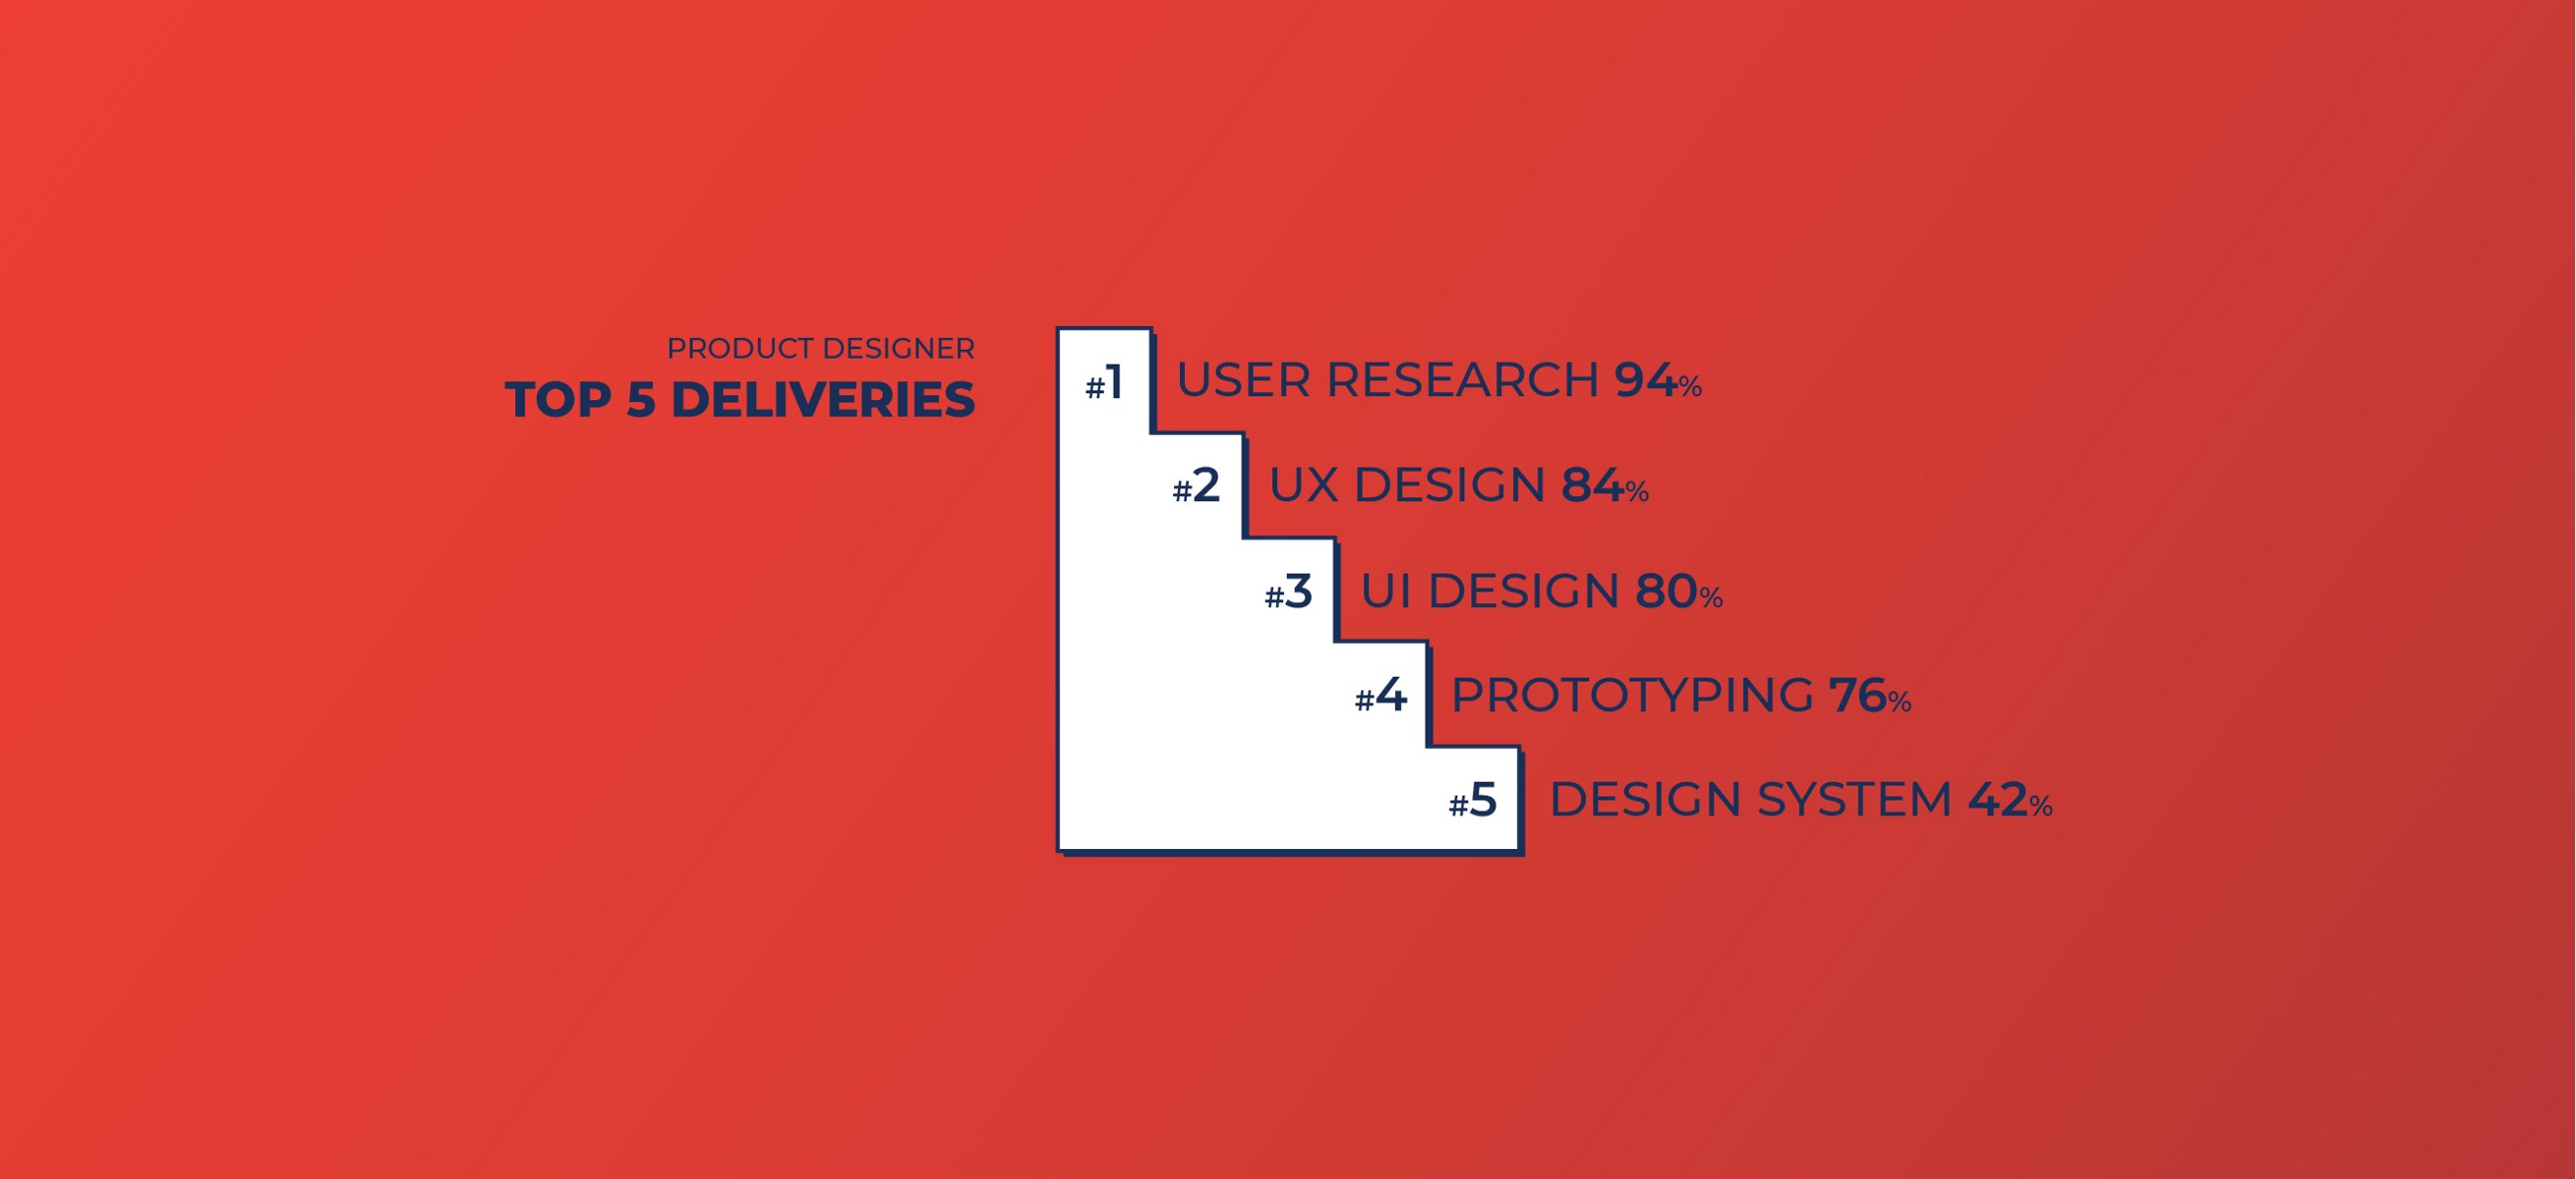 Top 5 Outcomes for Product Designers: User Research, UX, UI, Prototyping, Design system